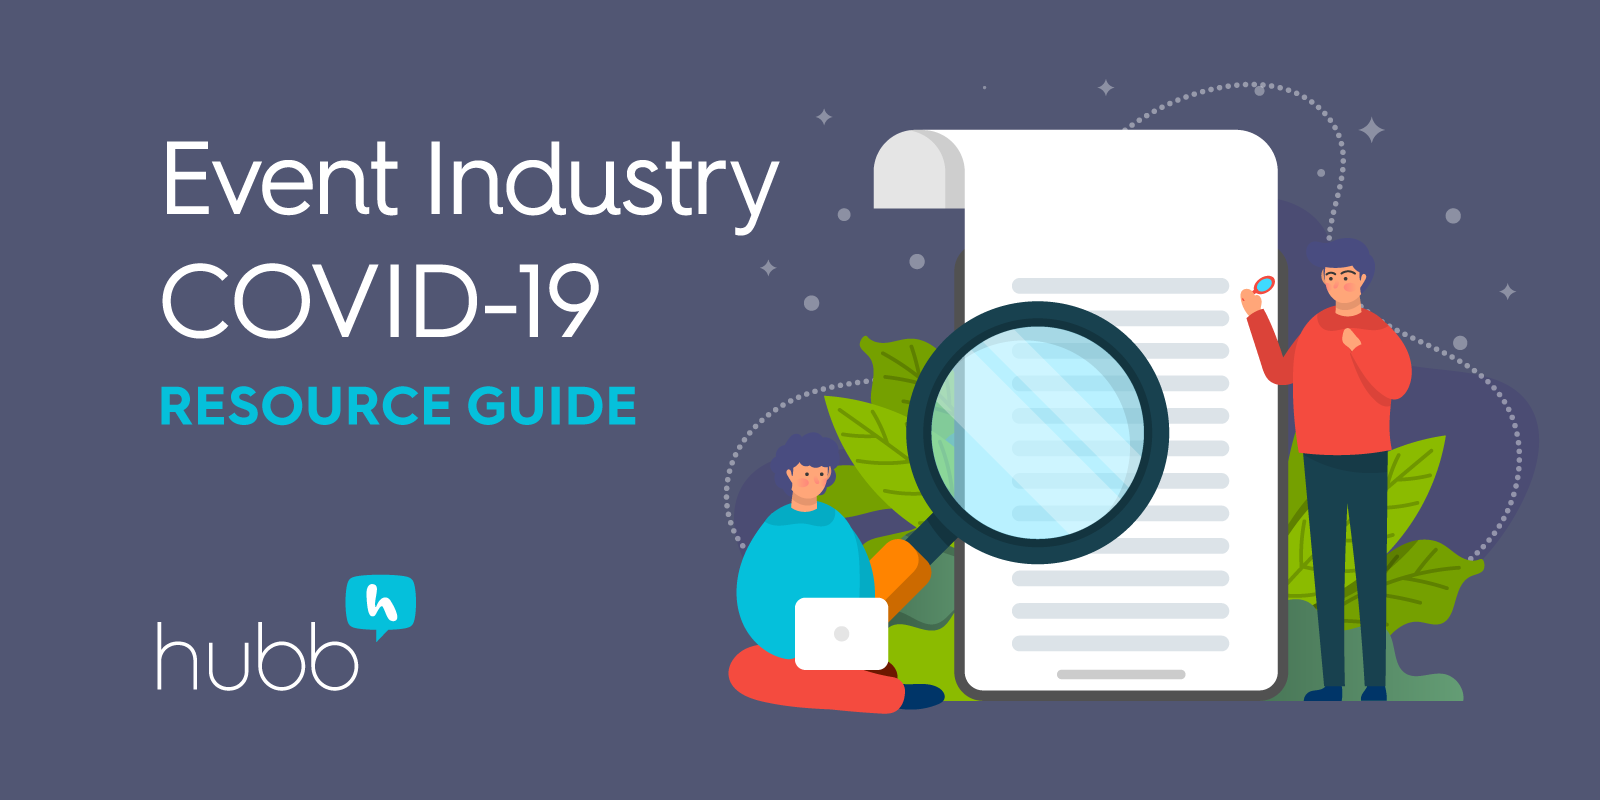 Event Industry COVID-19 Resource Guide